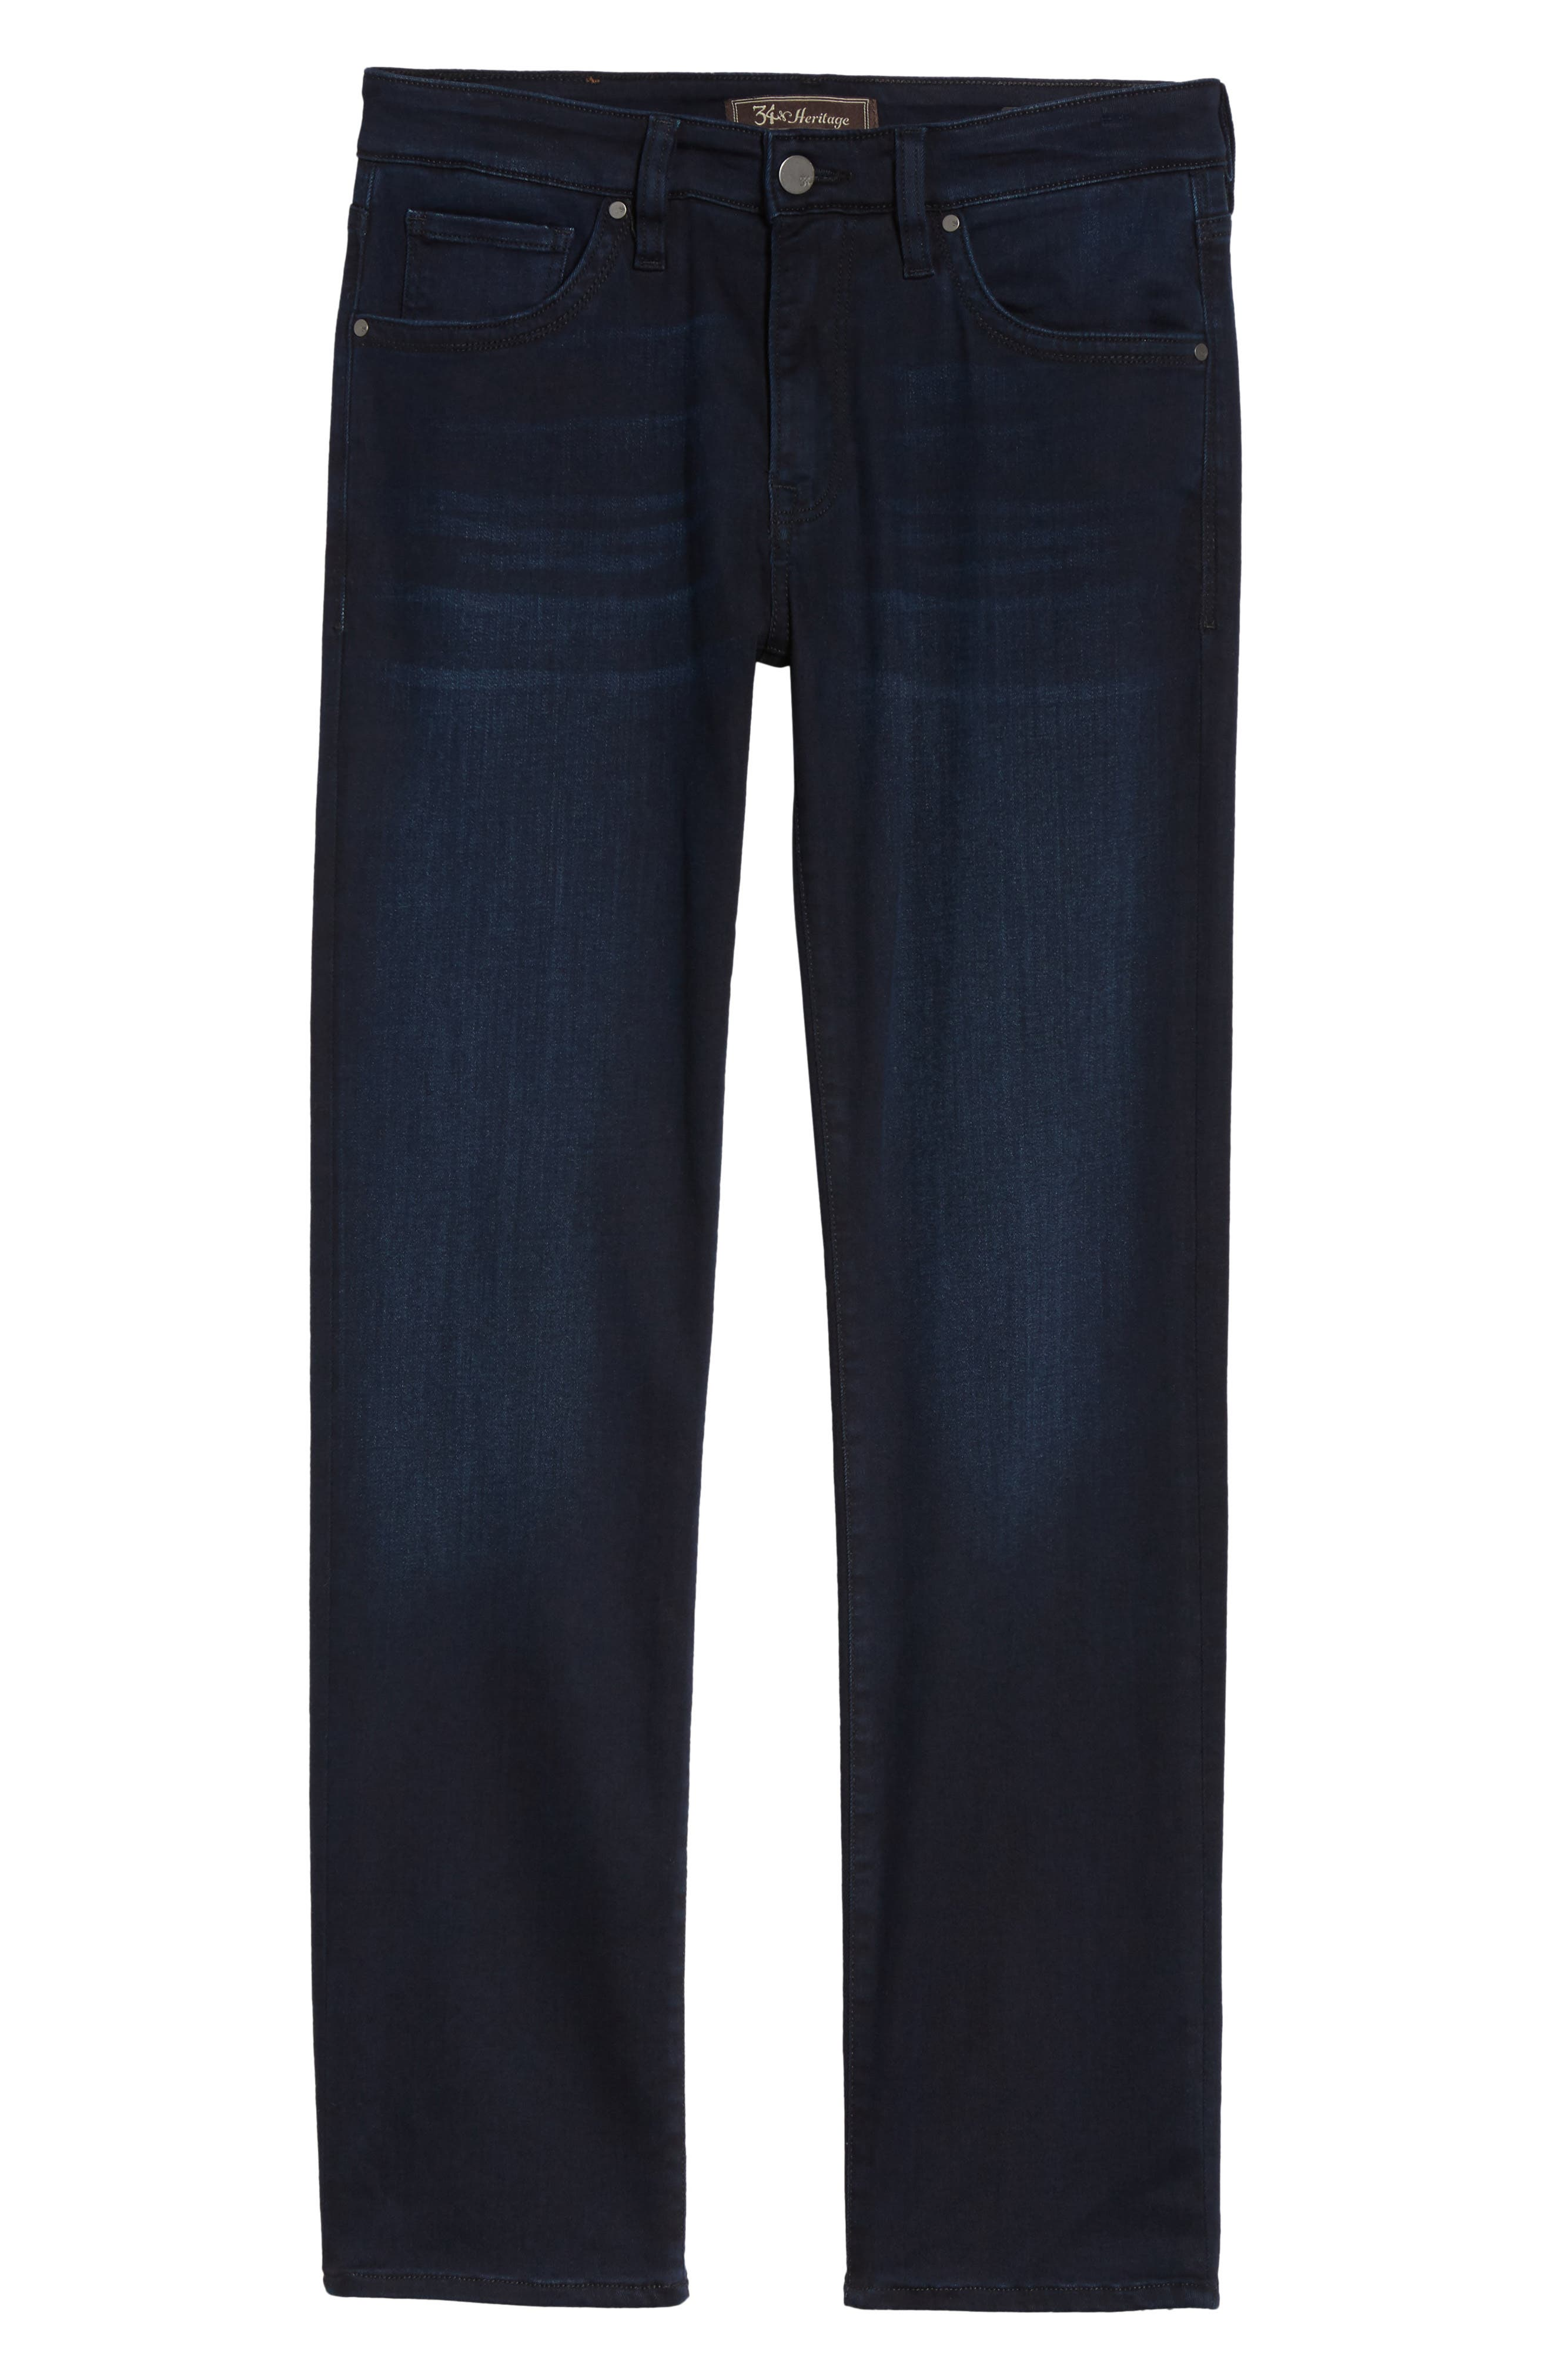 Courage Straight Fit Jeans,                             Alternate thumbnail 6, color,                             Ink Rome